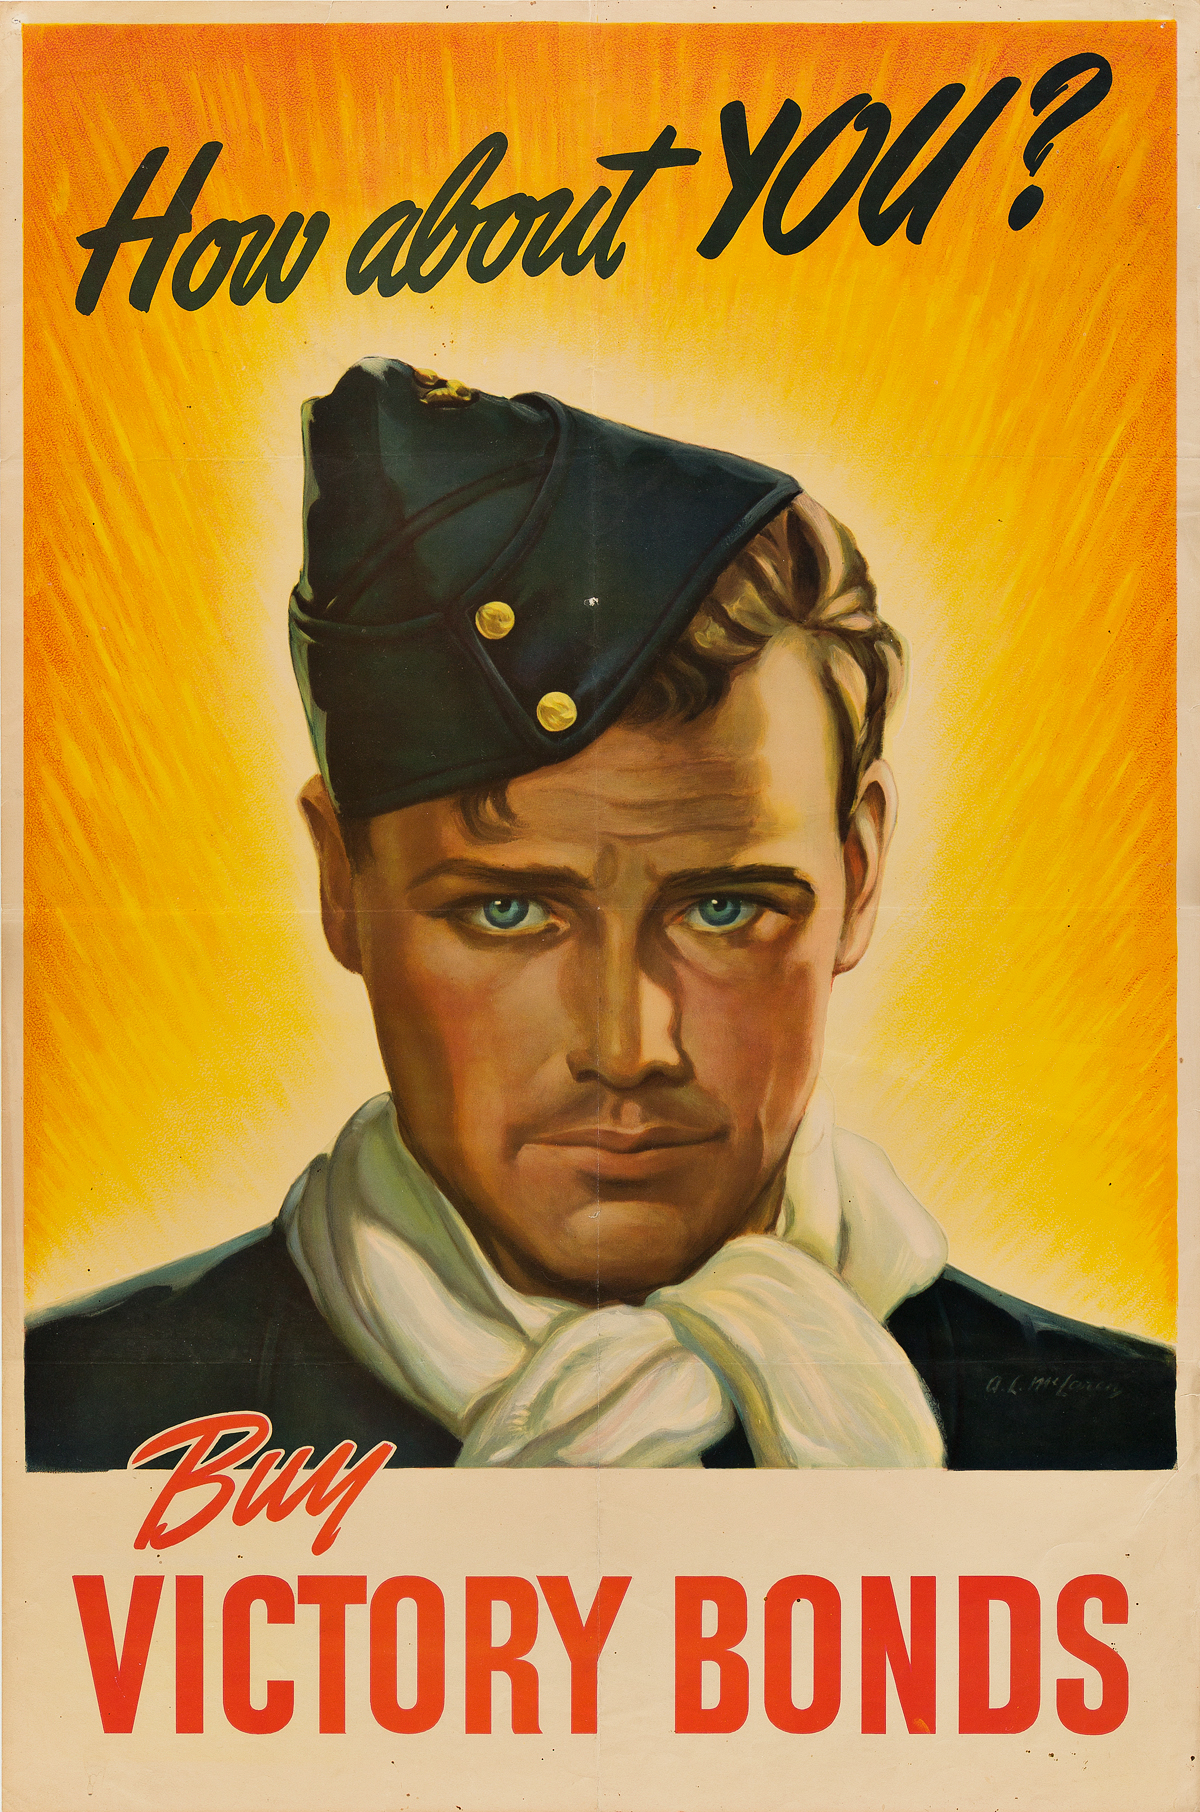 VARIOUS-ARTISTS-[WORLD-WAR-II]-Group-of-10-posters-Circa-1940s-Sizes-vary-each-approximately-40x28-inches-101x71-cm